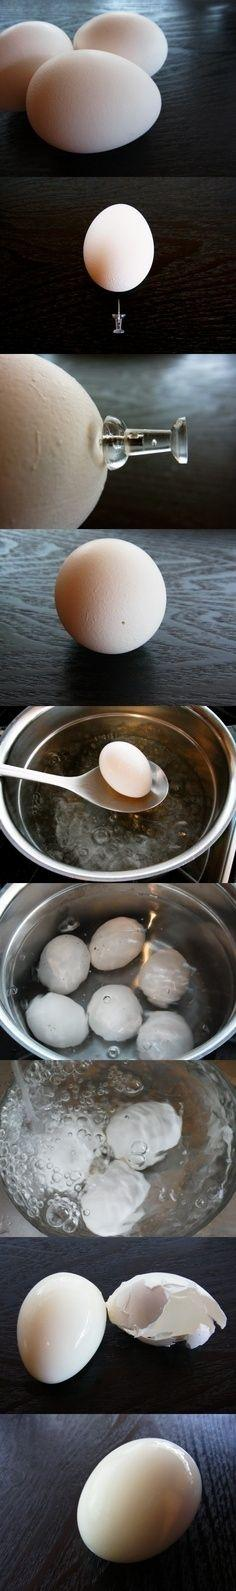 Use a Thumb Tac for the Perfect Boiled Egg   Community Post: 34 Creative Kitchen Hacks That Every Cook Should Know: Hard Boiled, Kitchen Hacks, Idea, Boil Egg, Boiled Eggs, Cooking Tips, Perfect Boiled, Food Hacks, Food Tips